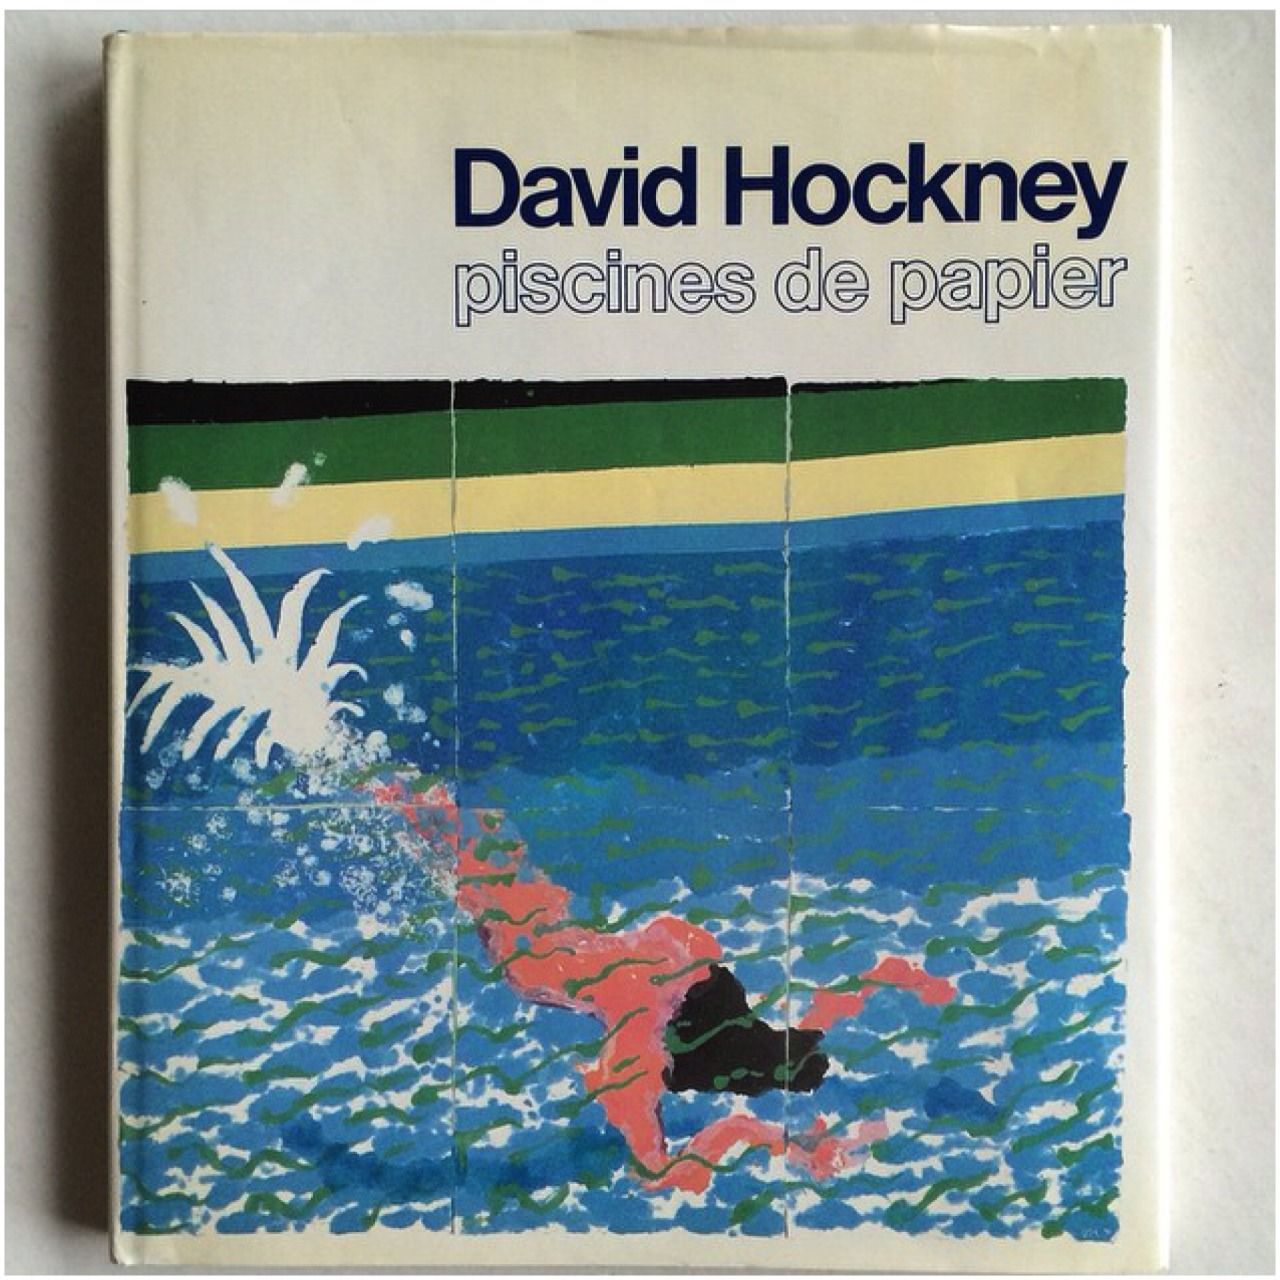 altcomics: David Hockney